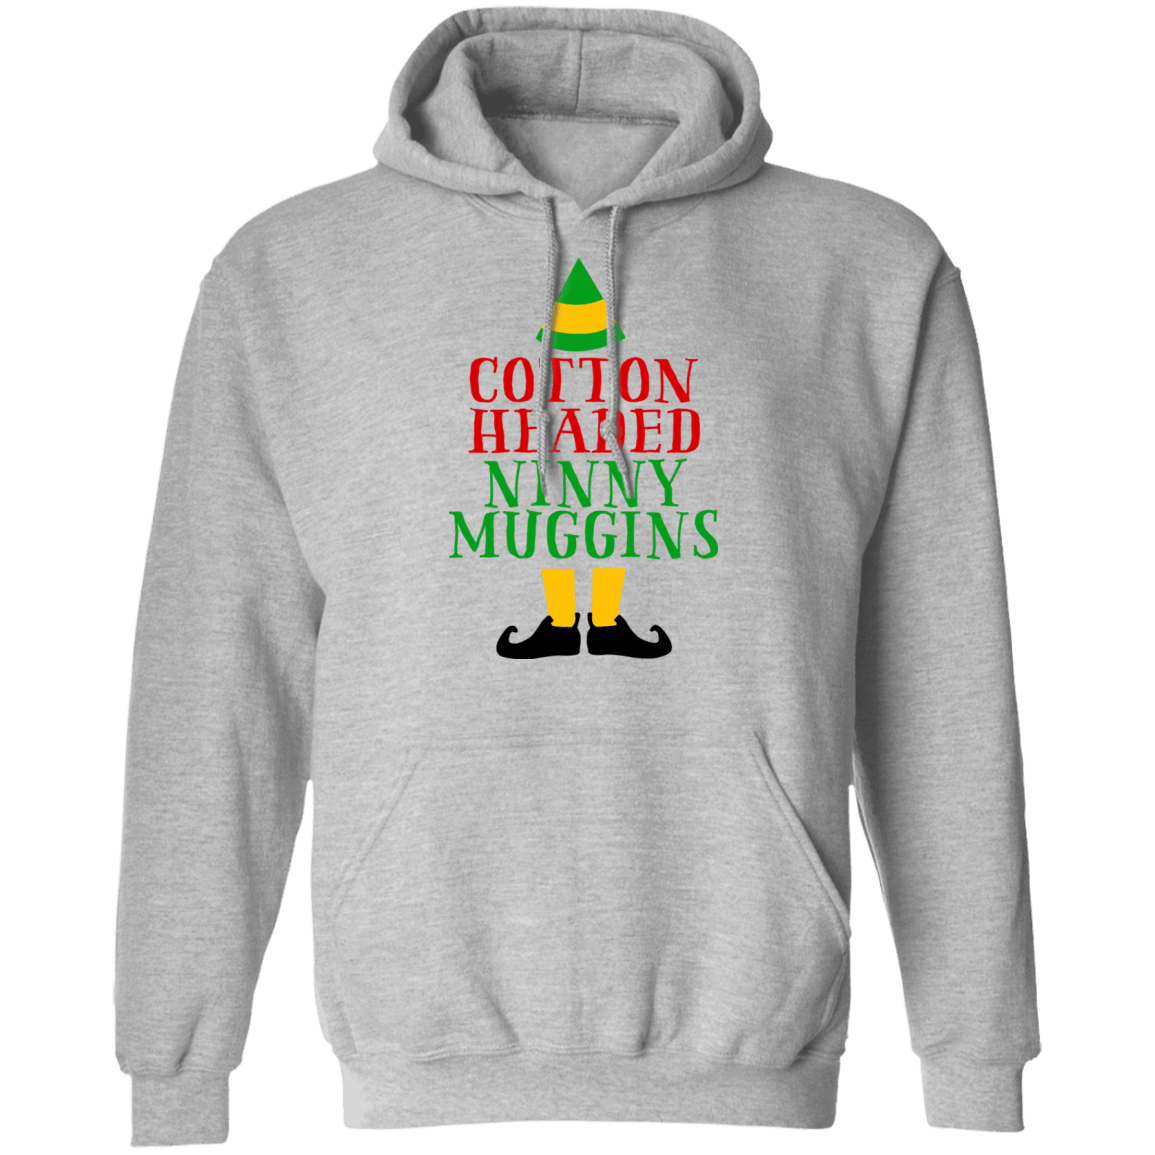 Cotton Headed Ninny Muggins Elf T-Shirts, Hoodies 541-4741-82220529-23111 - Tee Ript